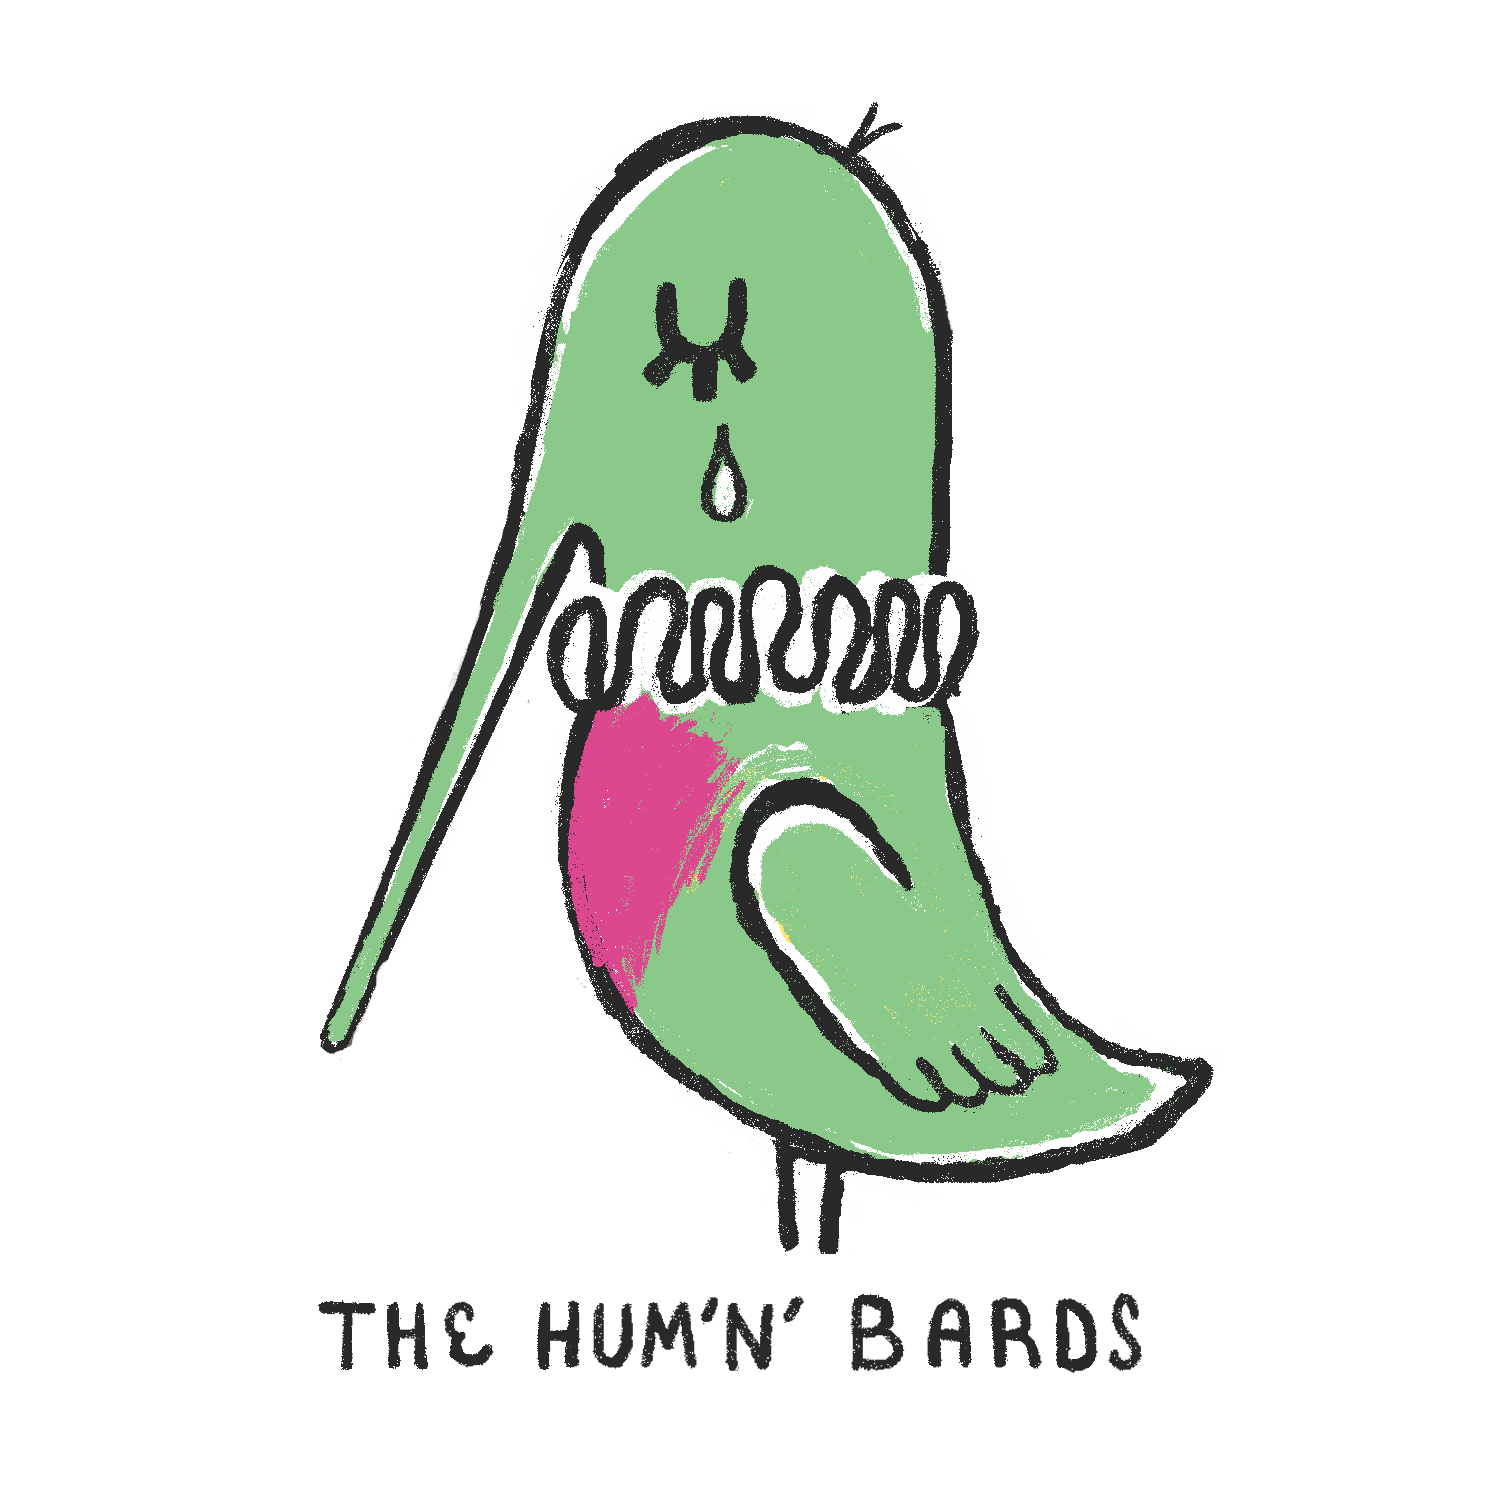 The Hum'n'bards